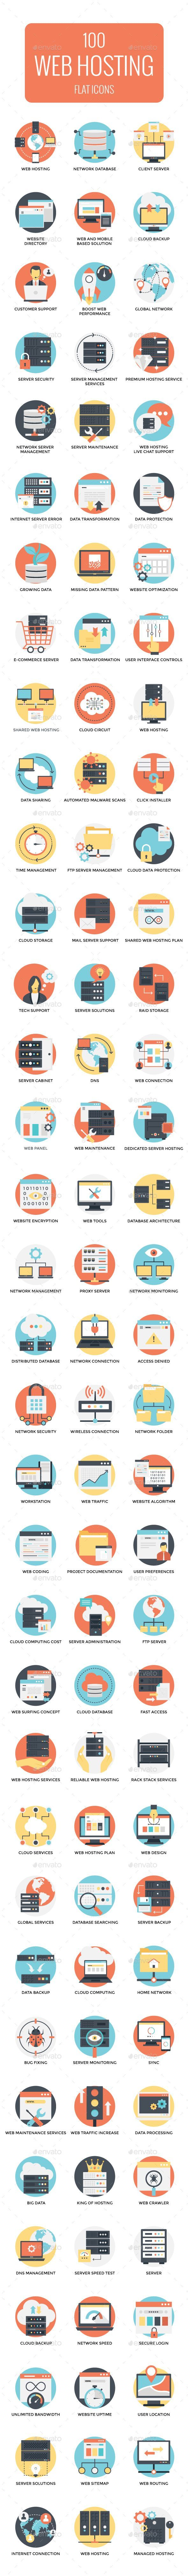 100 Flat Web Hosting Icon — Vector EPS #flat icons #growing data • Available here ➝ https://graphicriver.net/item/100-flat-web-hosting-icon/21001488?ref=rabosch